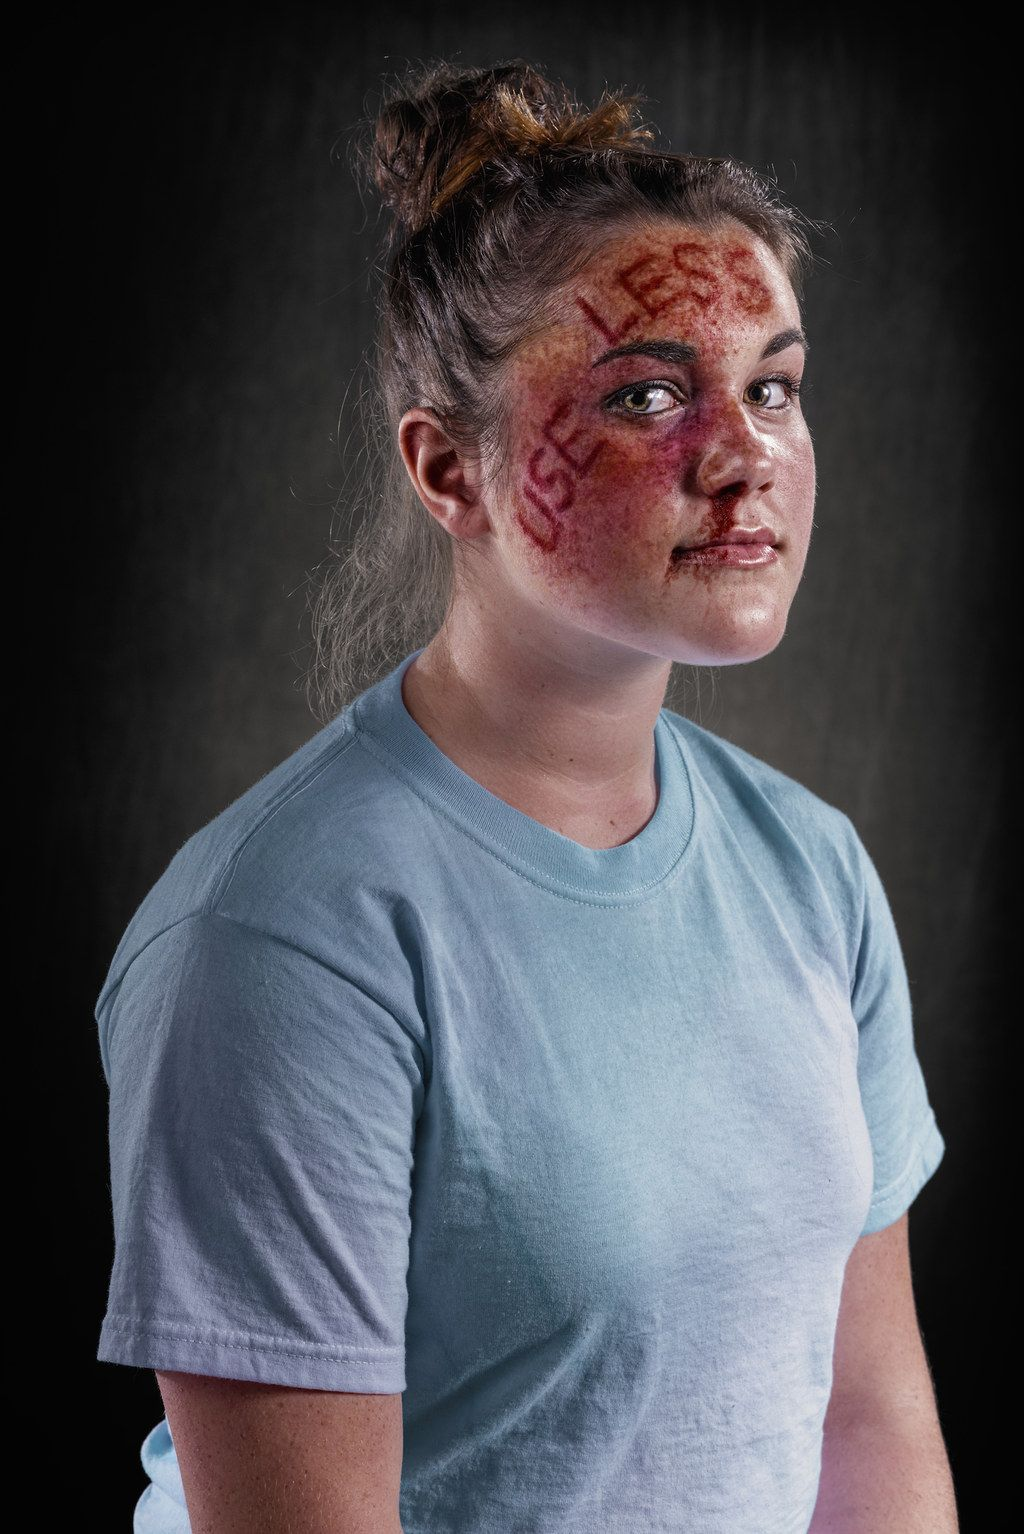 The Photos Aim To Provoke Conversation About The Problems Of - Extremely powerful photo project shows effects verbal abuse